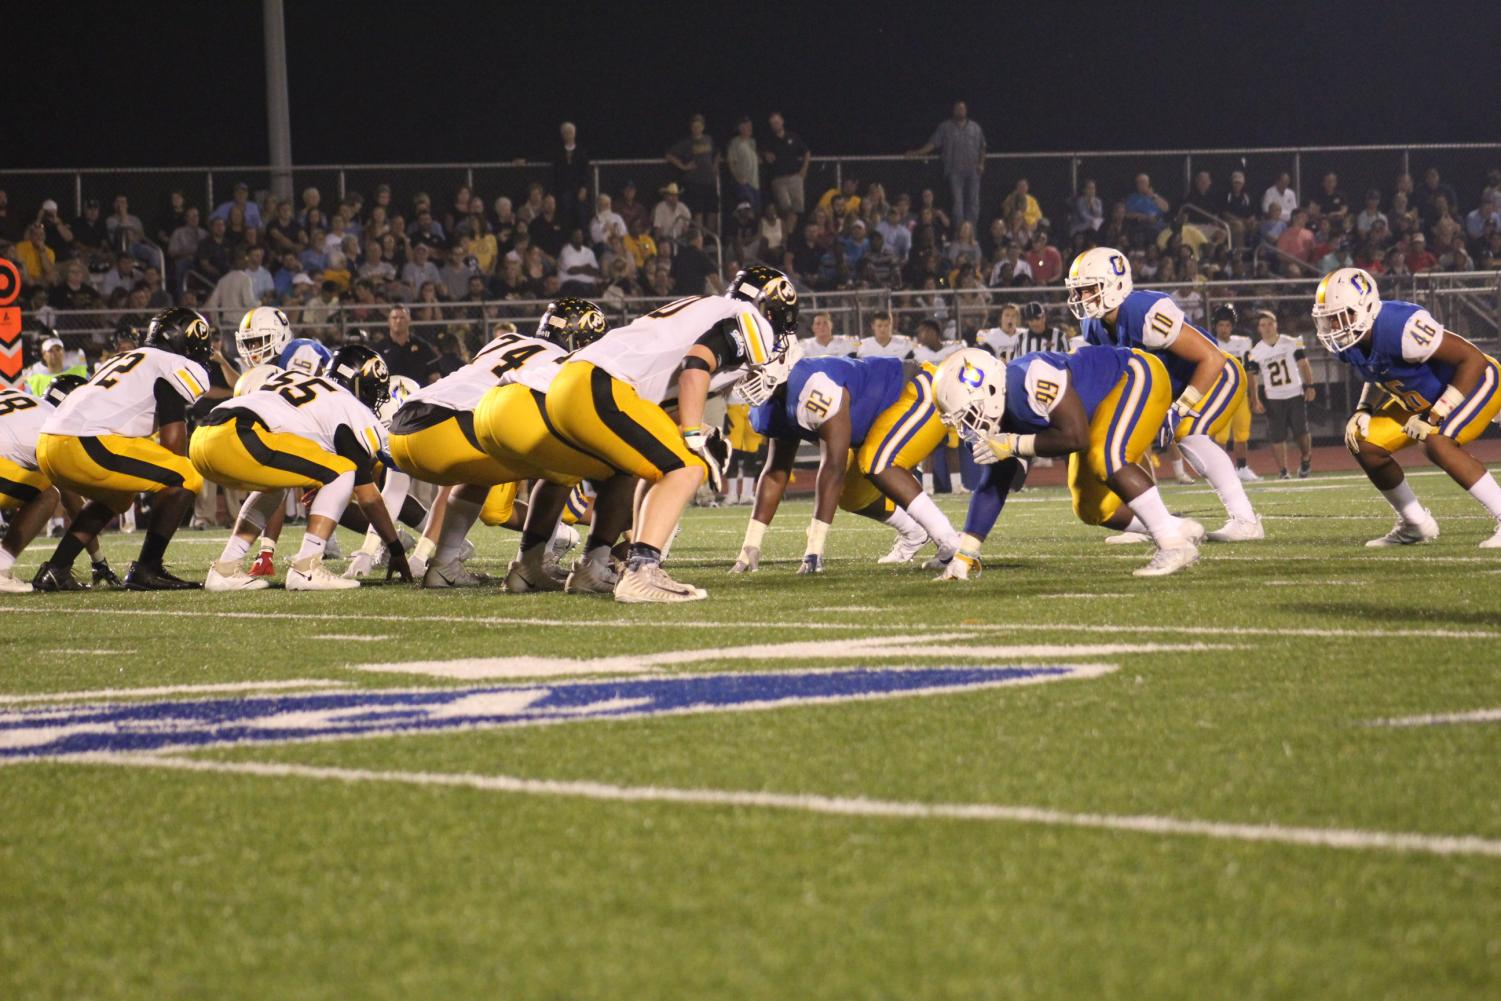 During last year's game against Pontotoc, the Chargers offensive line lines up. The Chargers finished the regular season with a 33-13 win over Tupelo last week.